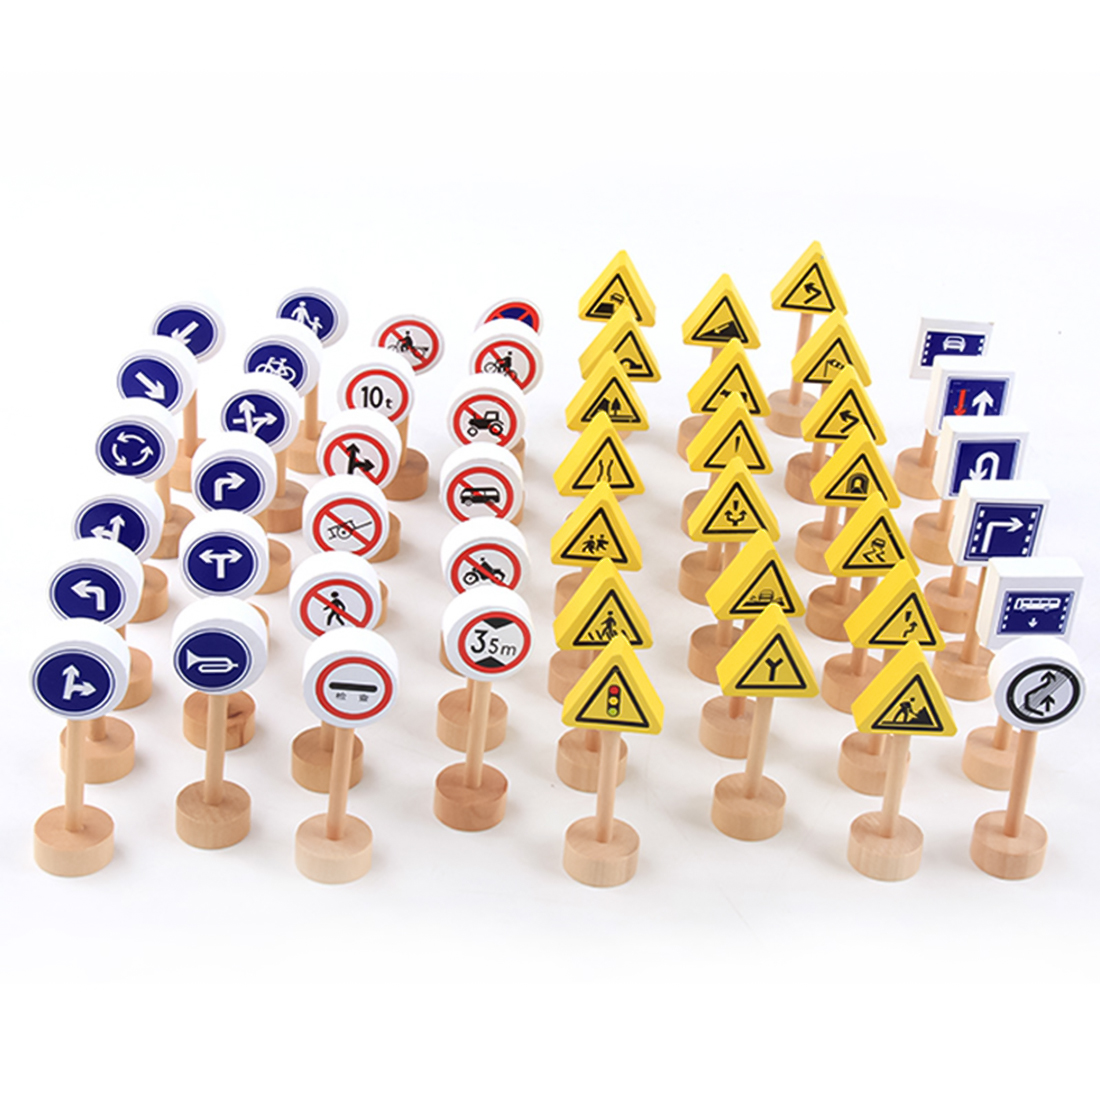 50pcs Double-sided Traffic Sign Building Block Educational Toys For Children Traffic Knowledge Learning Kits